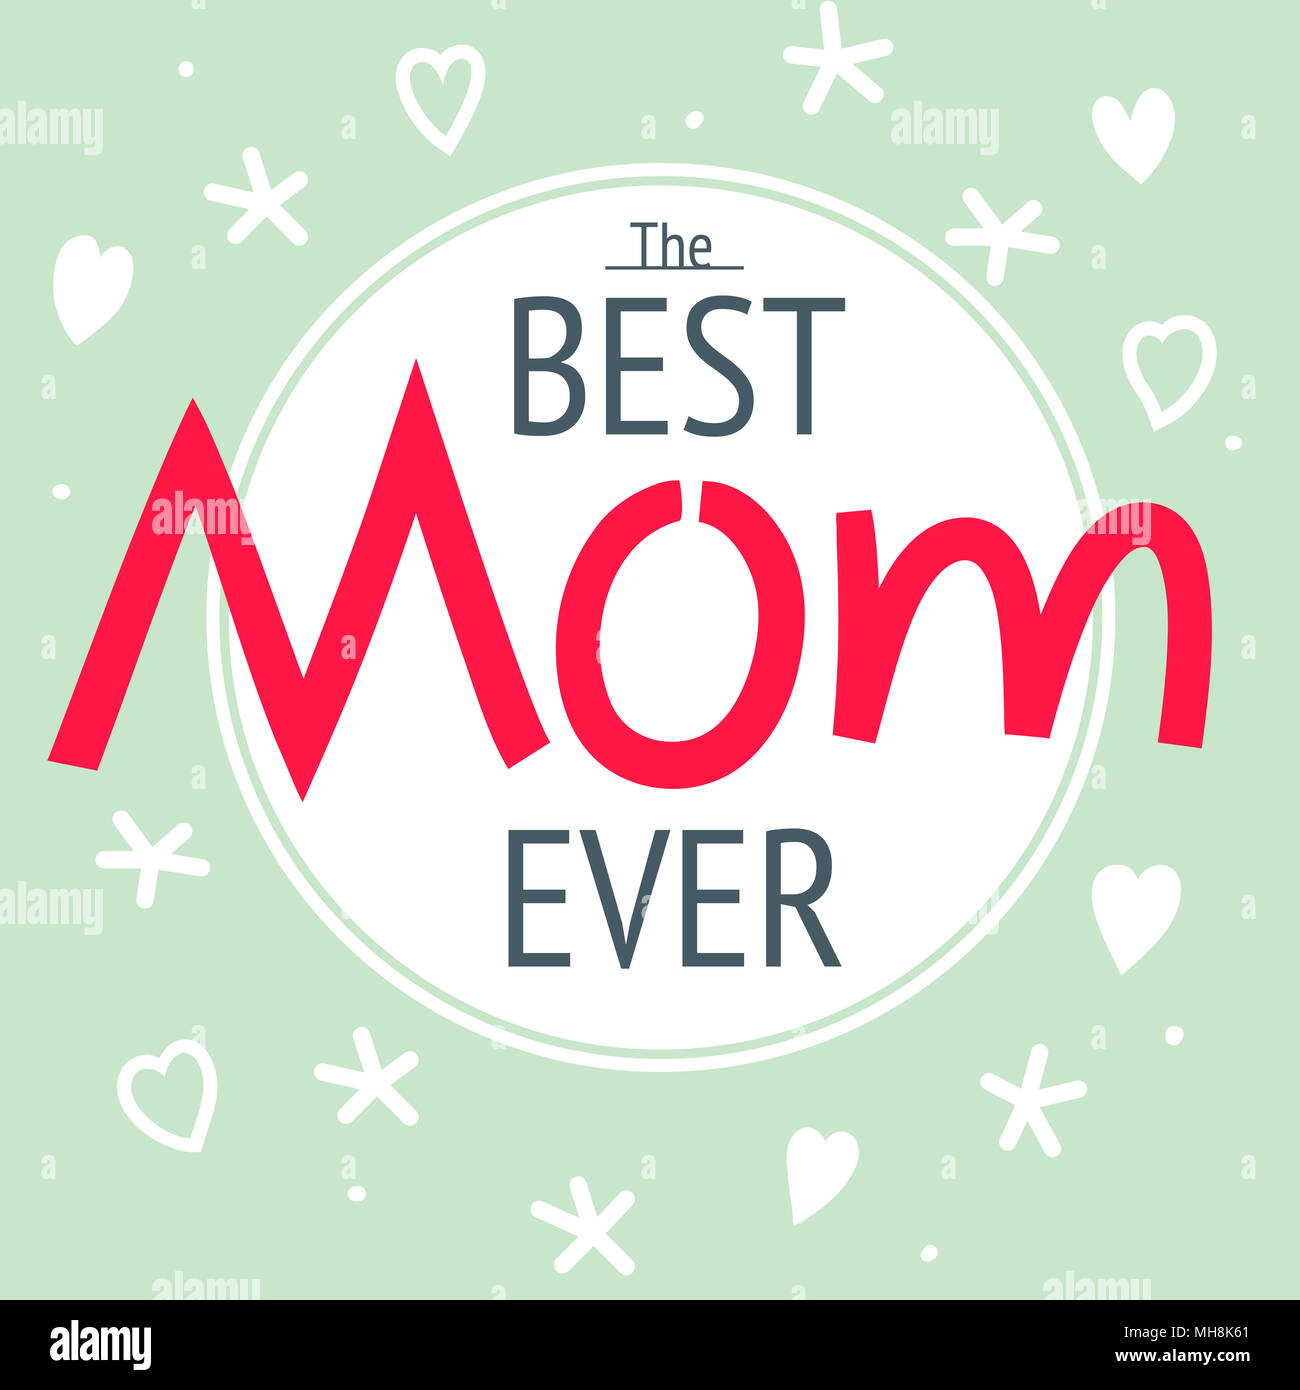 Happy Mothers Day Layout Greeting Card Design Frame With Lettering